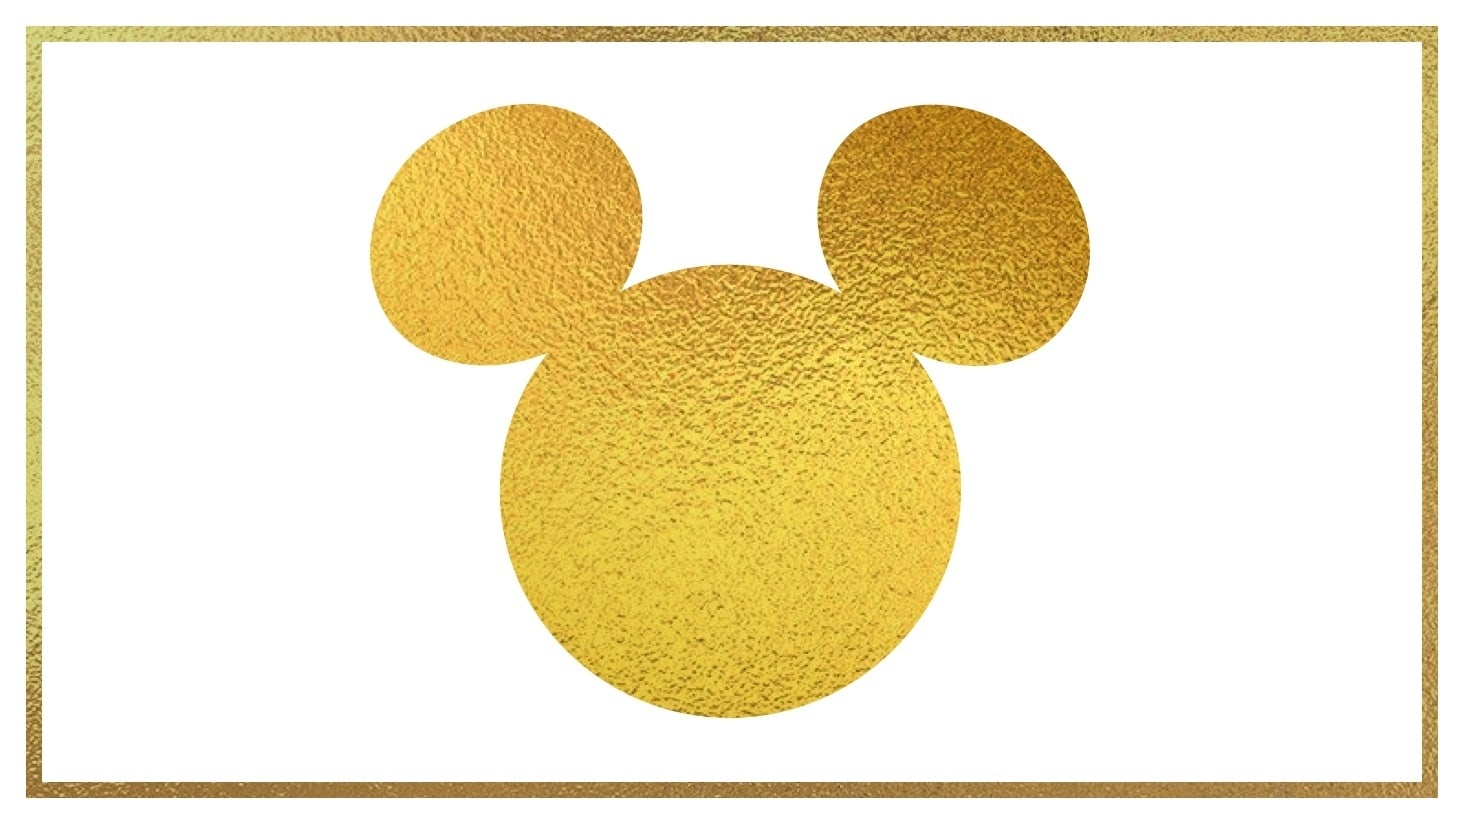 Gold Mickey Mouse silhouette